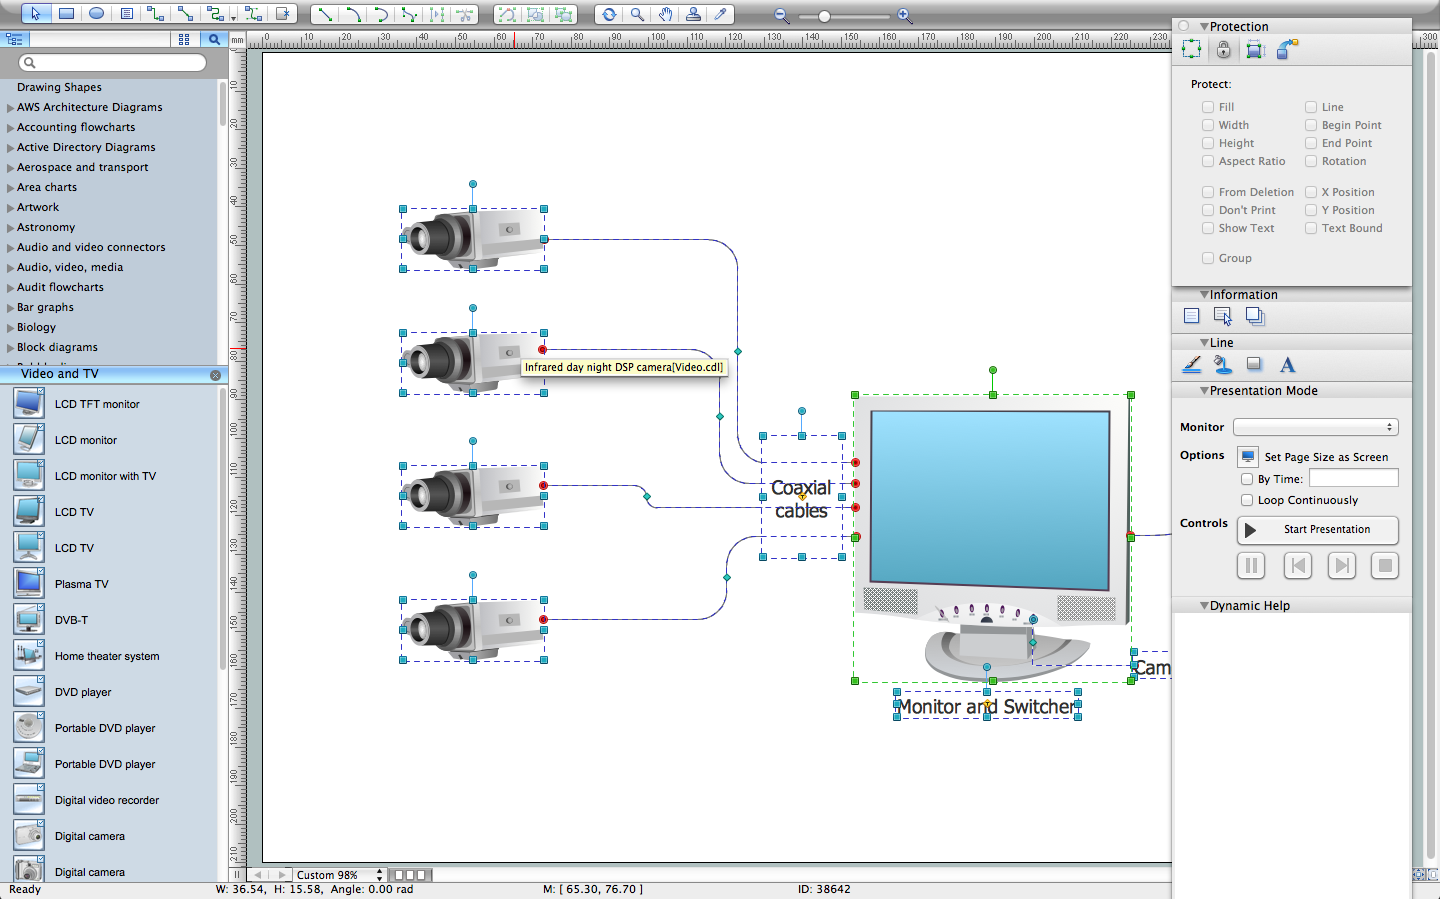 Admirable Electrical Drawing Software And Electrical Symbols How To Use Wiring Digital Resources Indicompassionincorg